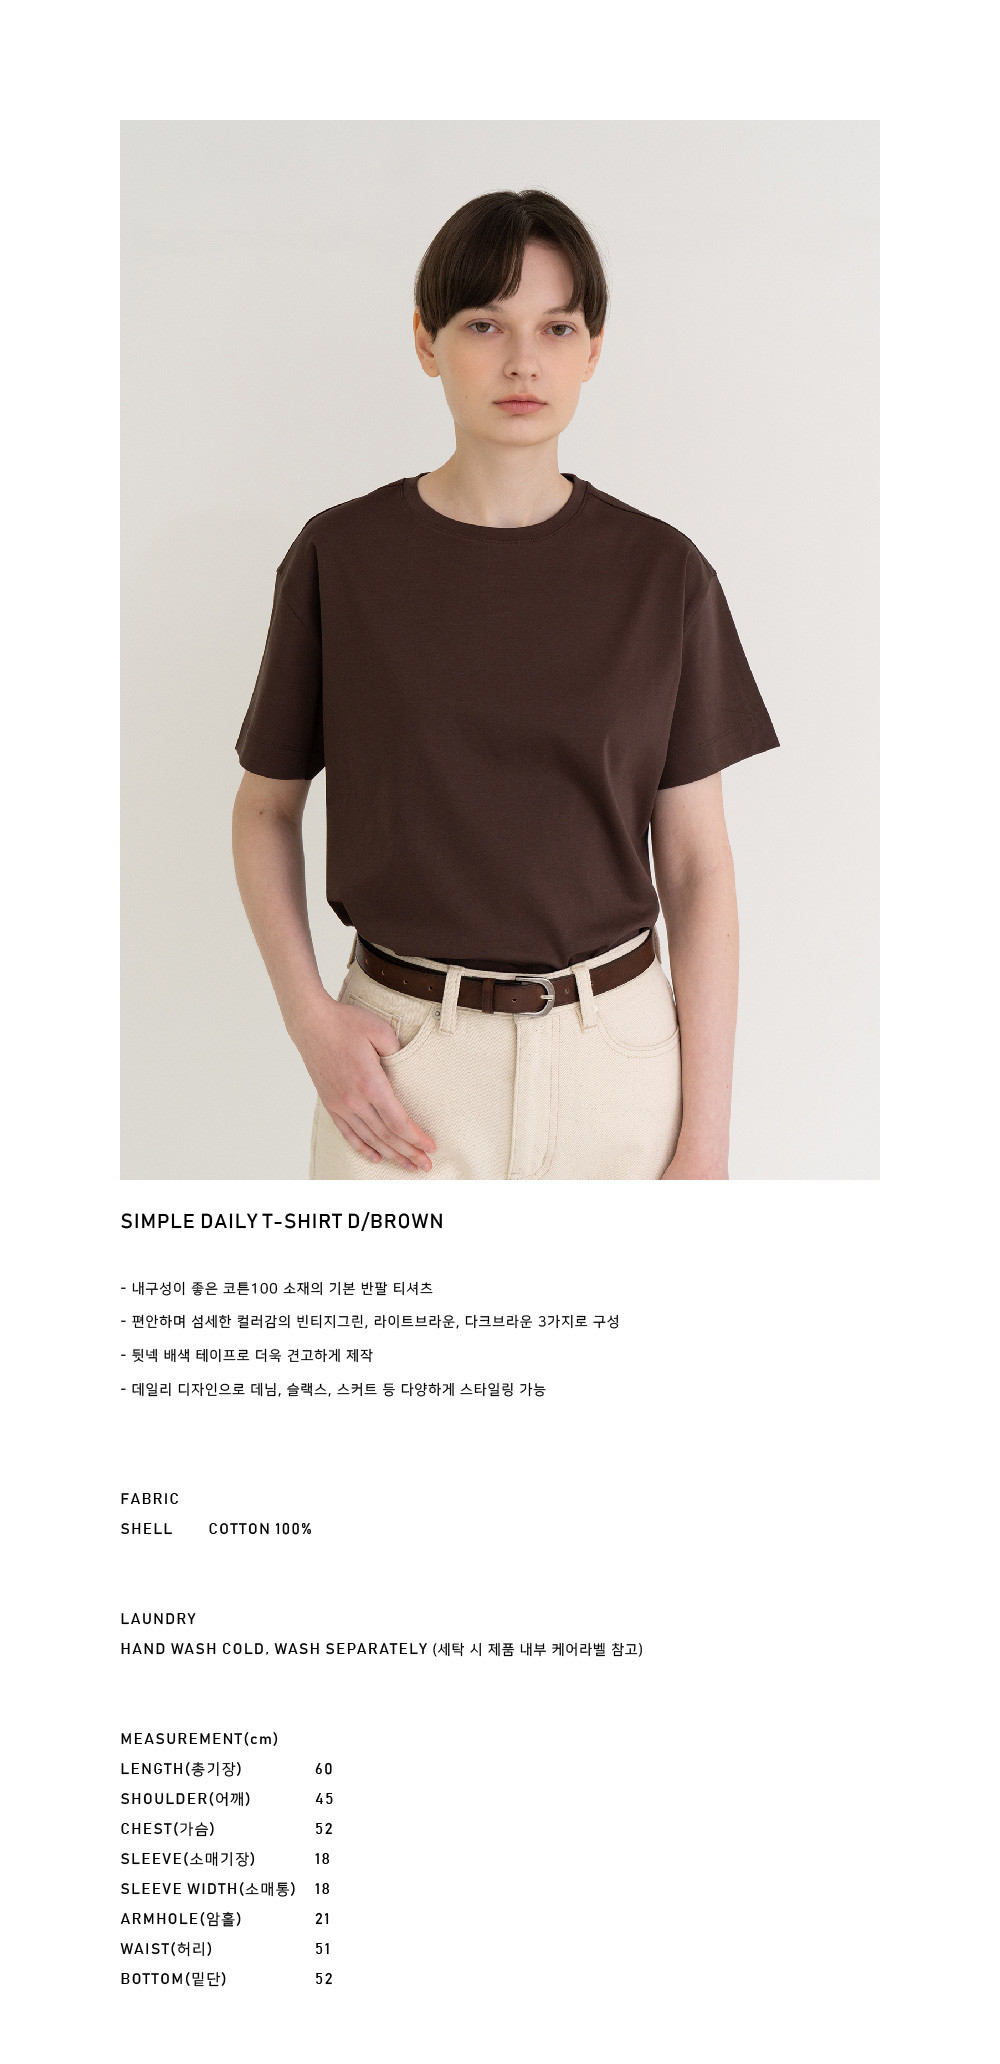 SIMPLE DAILY T-SHIRT D/BROWN